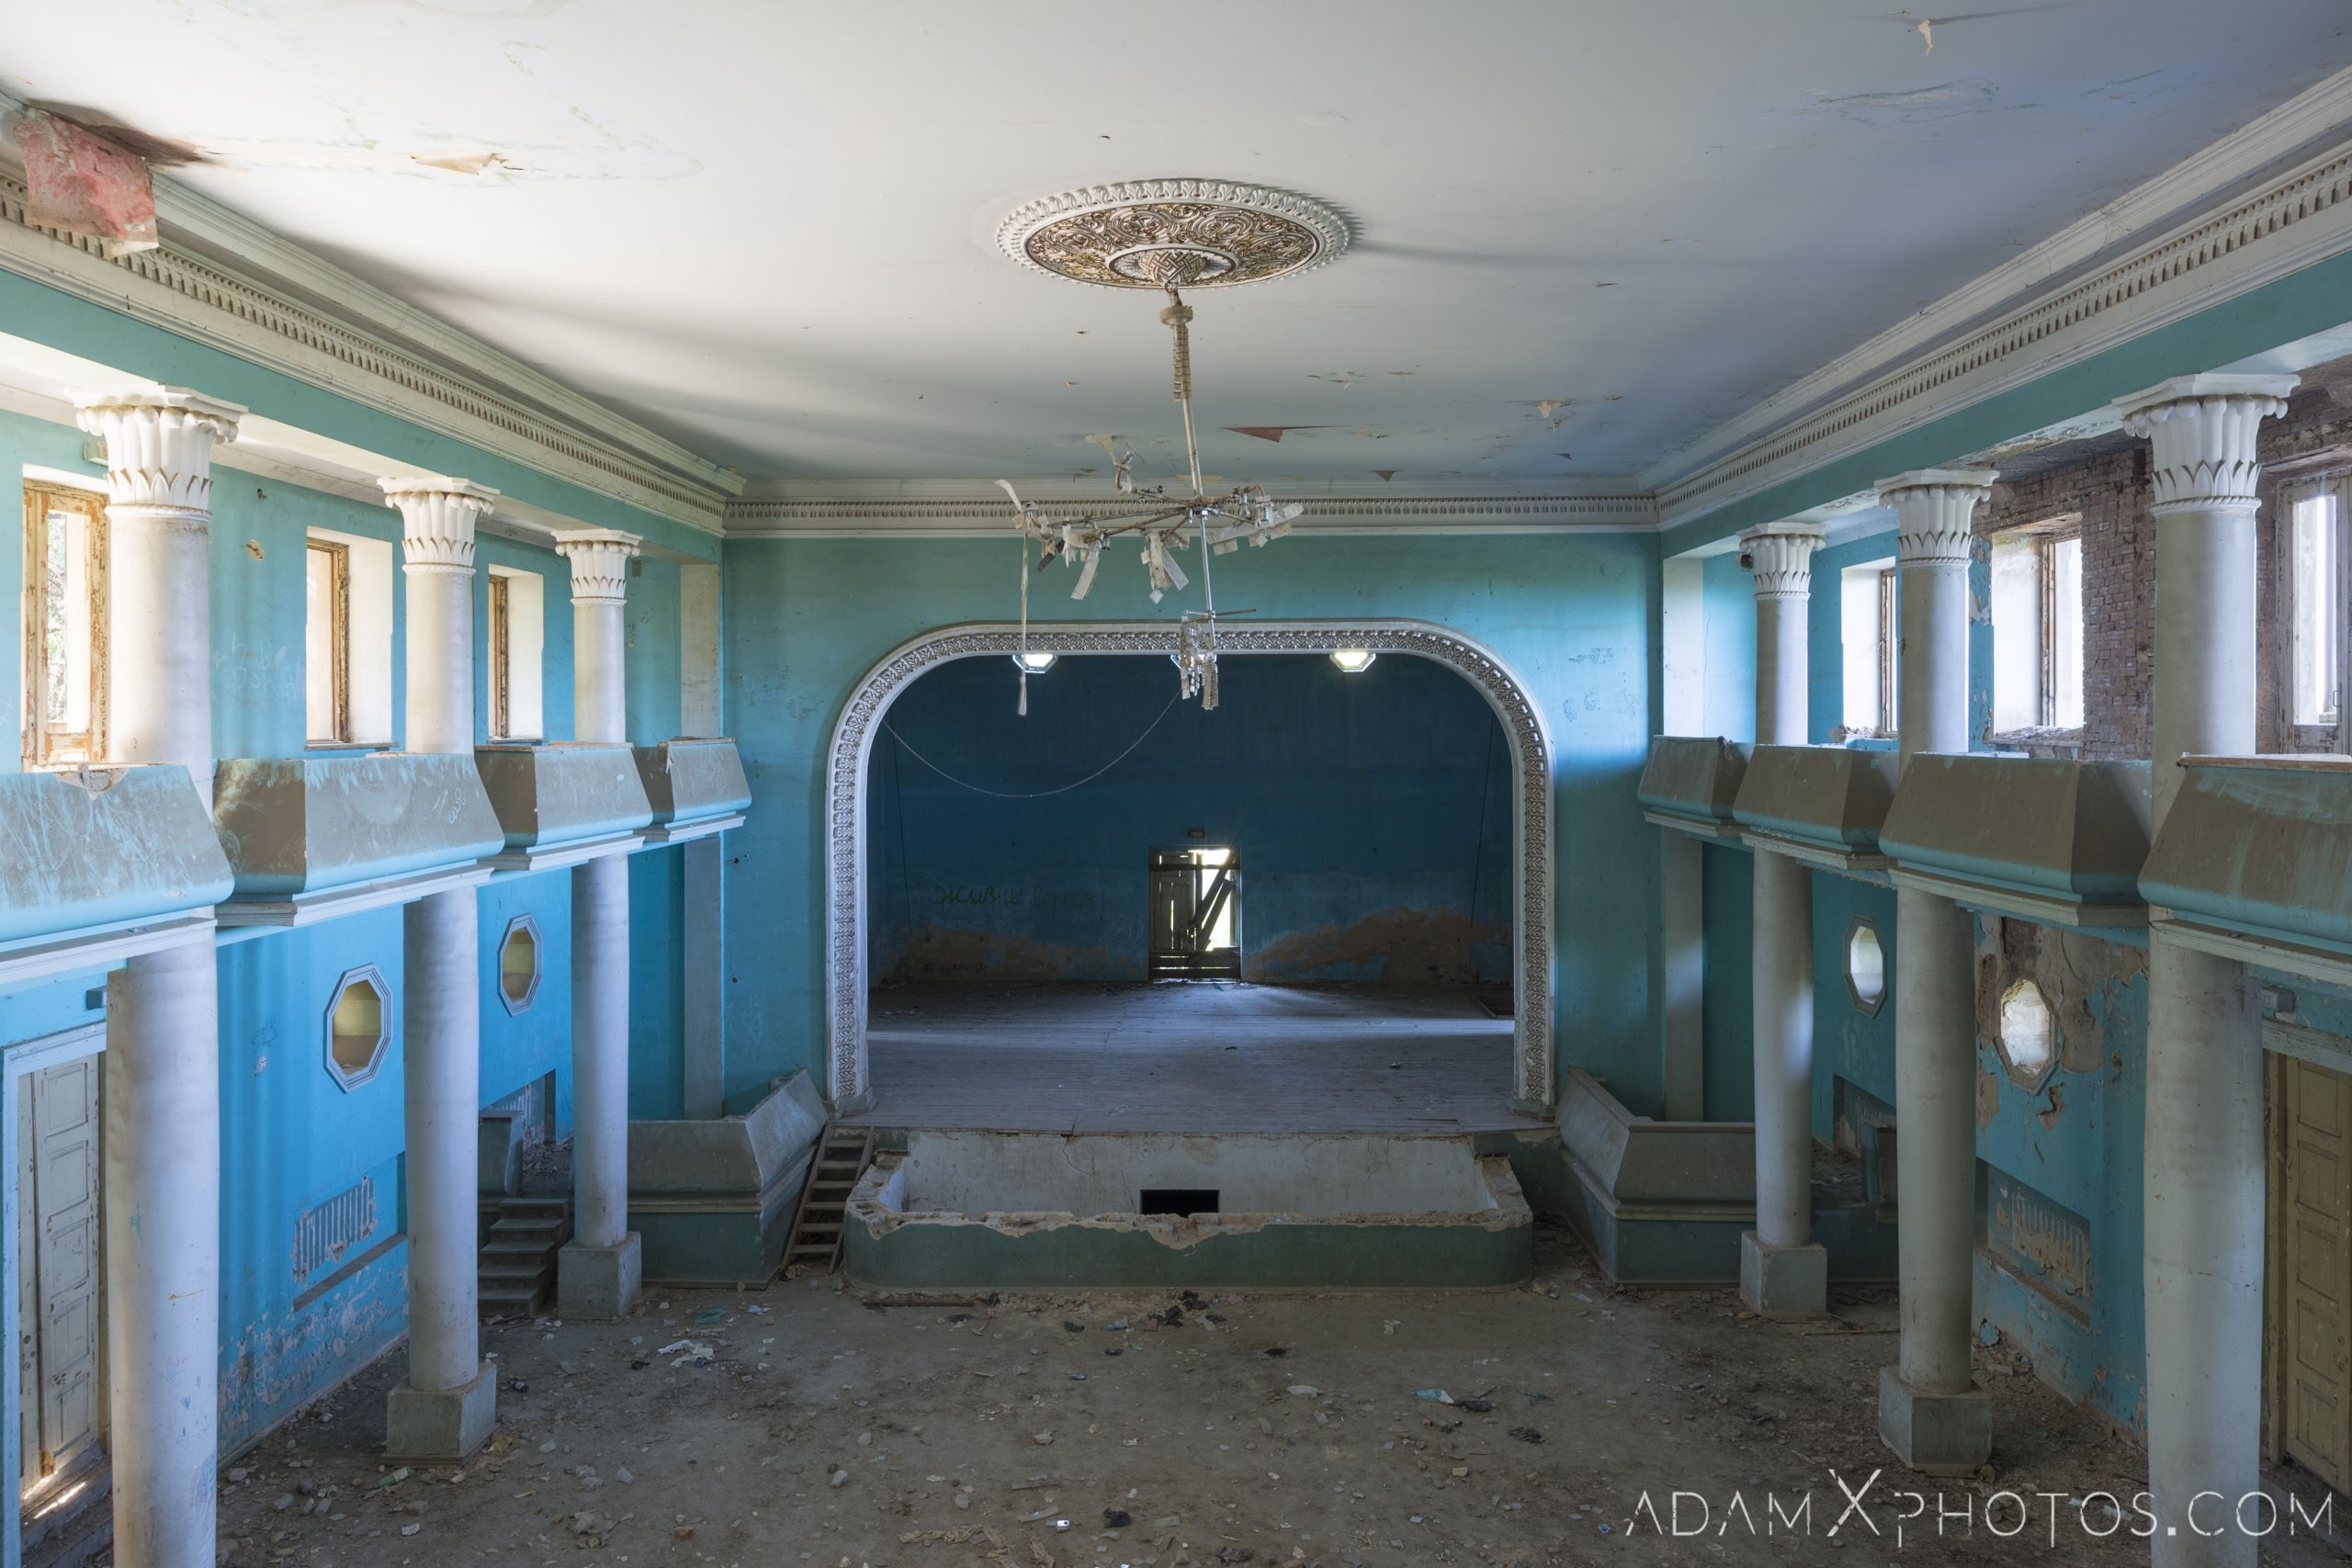 Balcony view chandelier House of Culture Palace Blue rural Soviet era Georgia Adam X AdamXPhotos Urbex Urban Exploration 2018 Abandoned Access History decay ruins lost forgotten derelict location creepy haunting eerie security